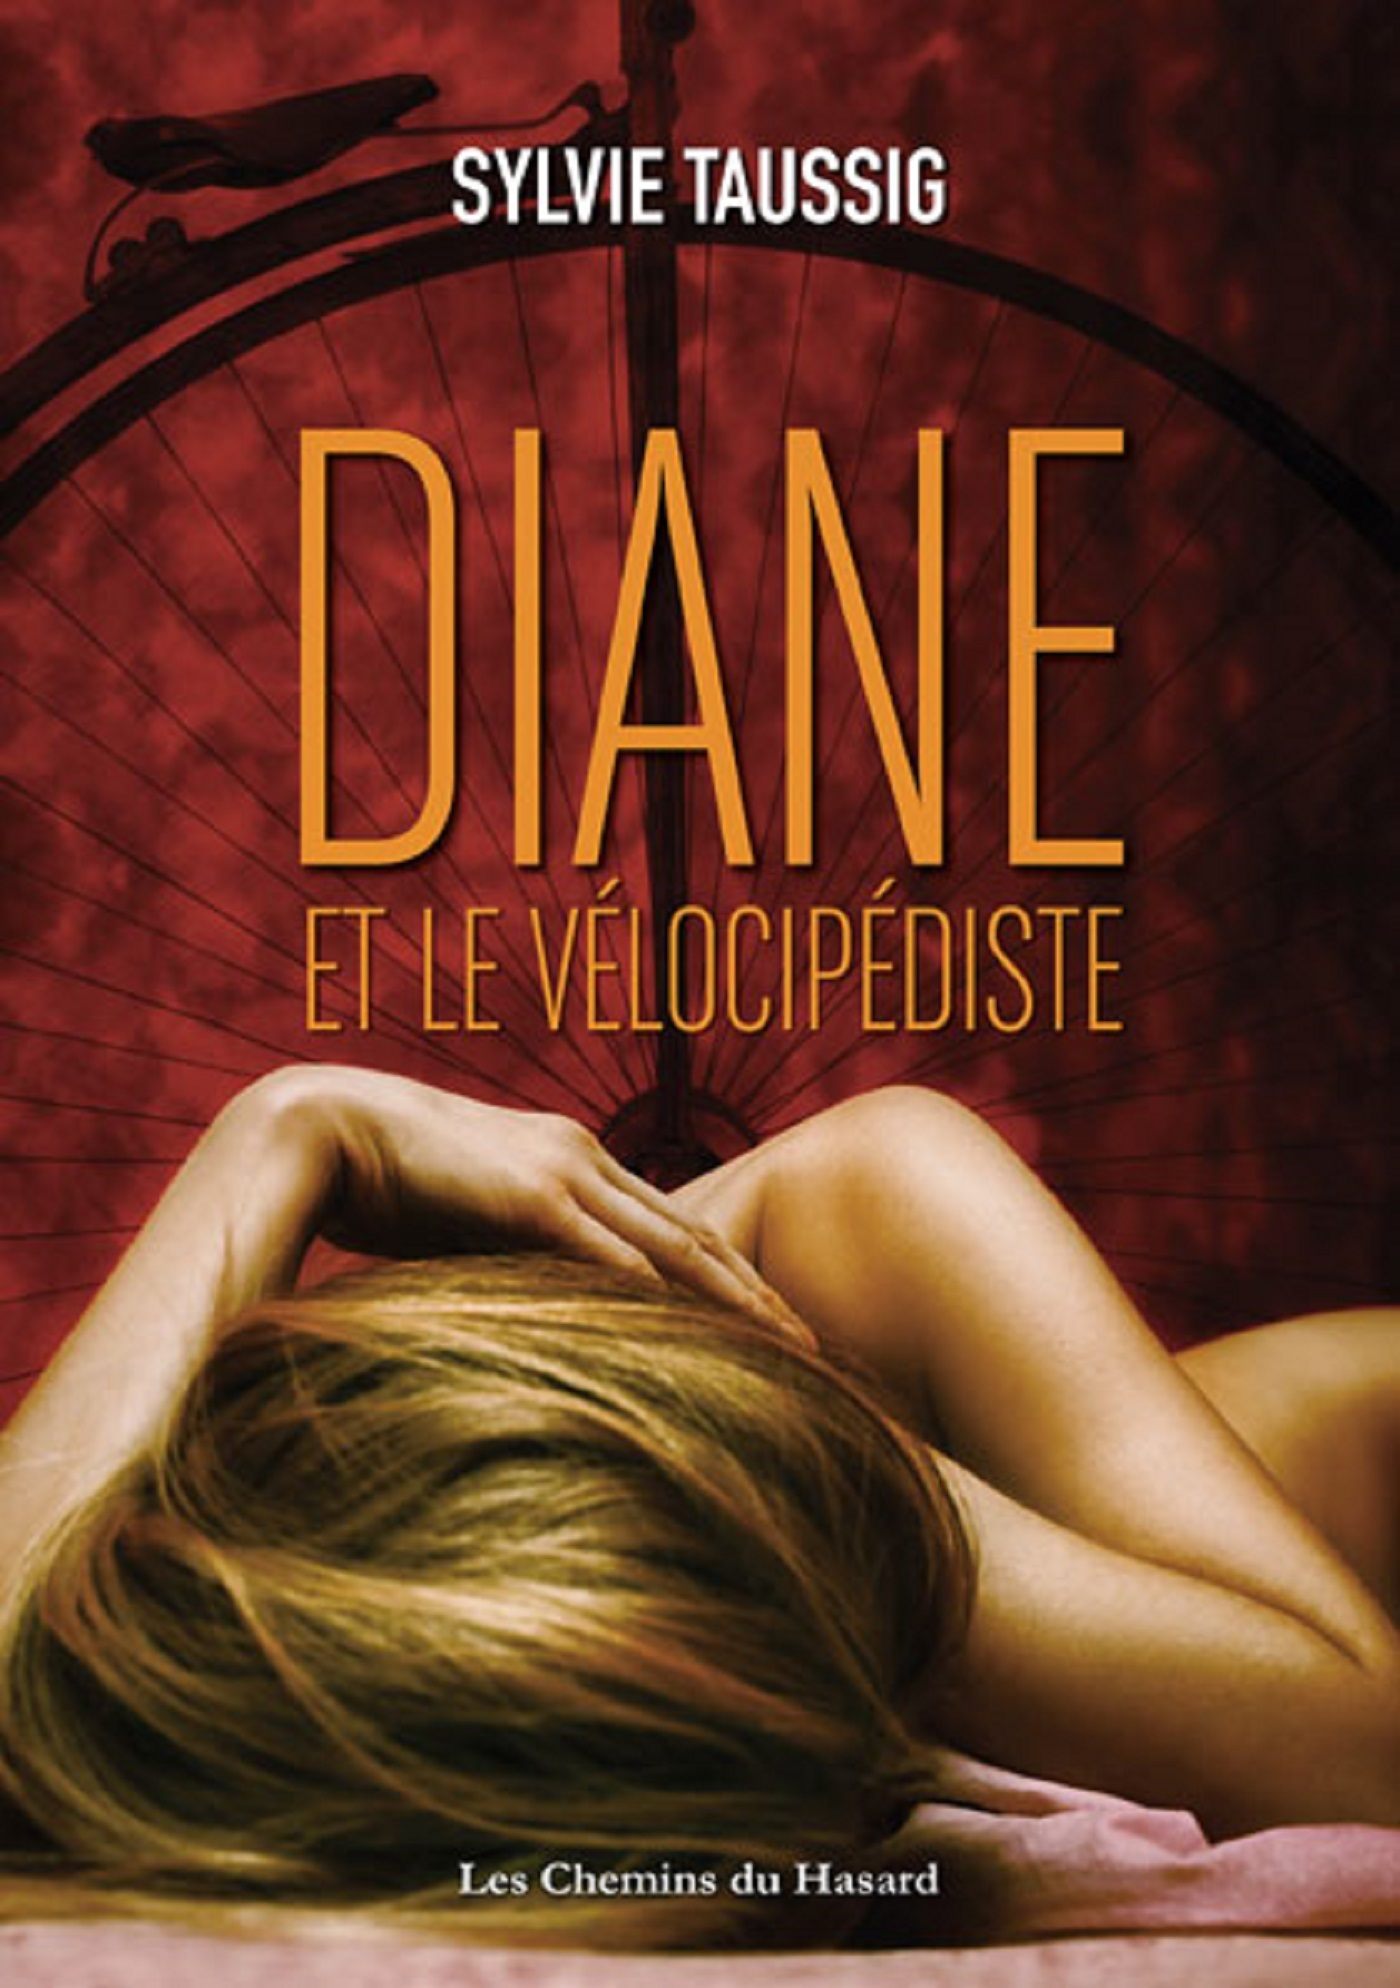 DIANE ET LE VELOCIPEDISTE